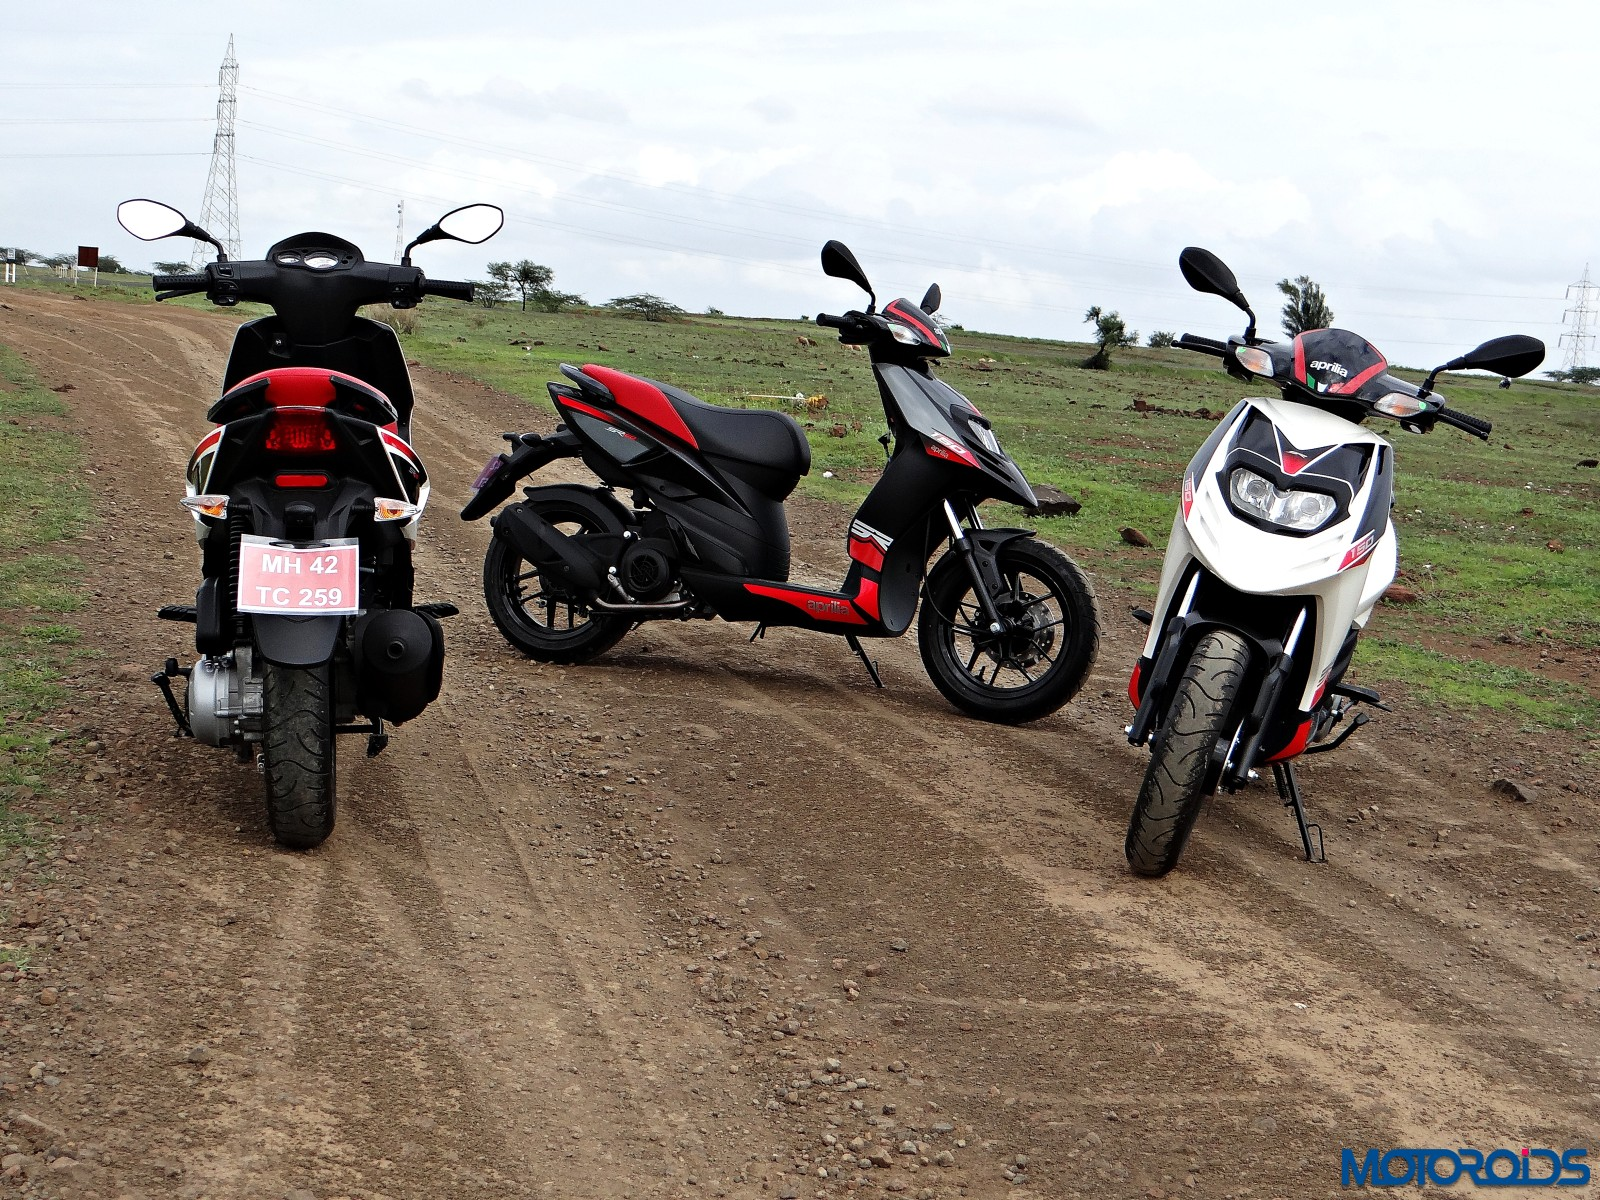 Aprilia SR 150 Review - Still Shots (1)